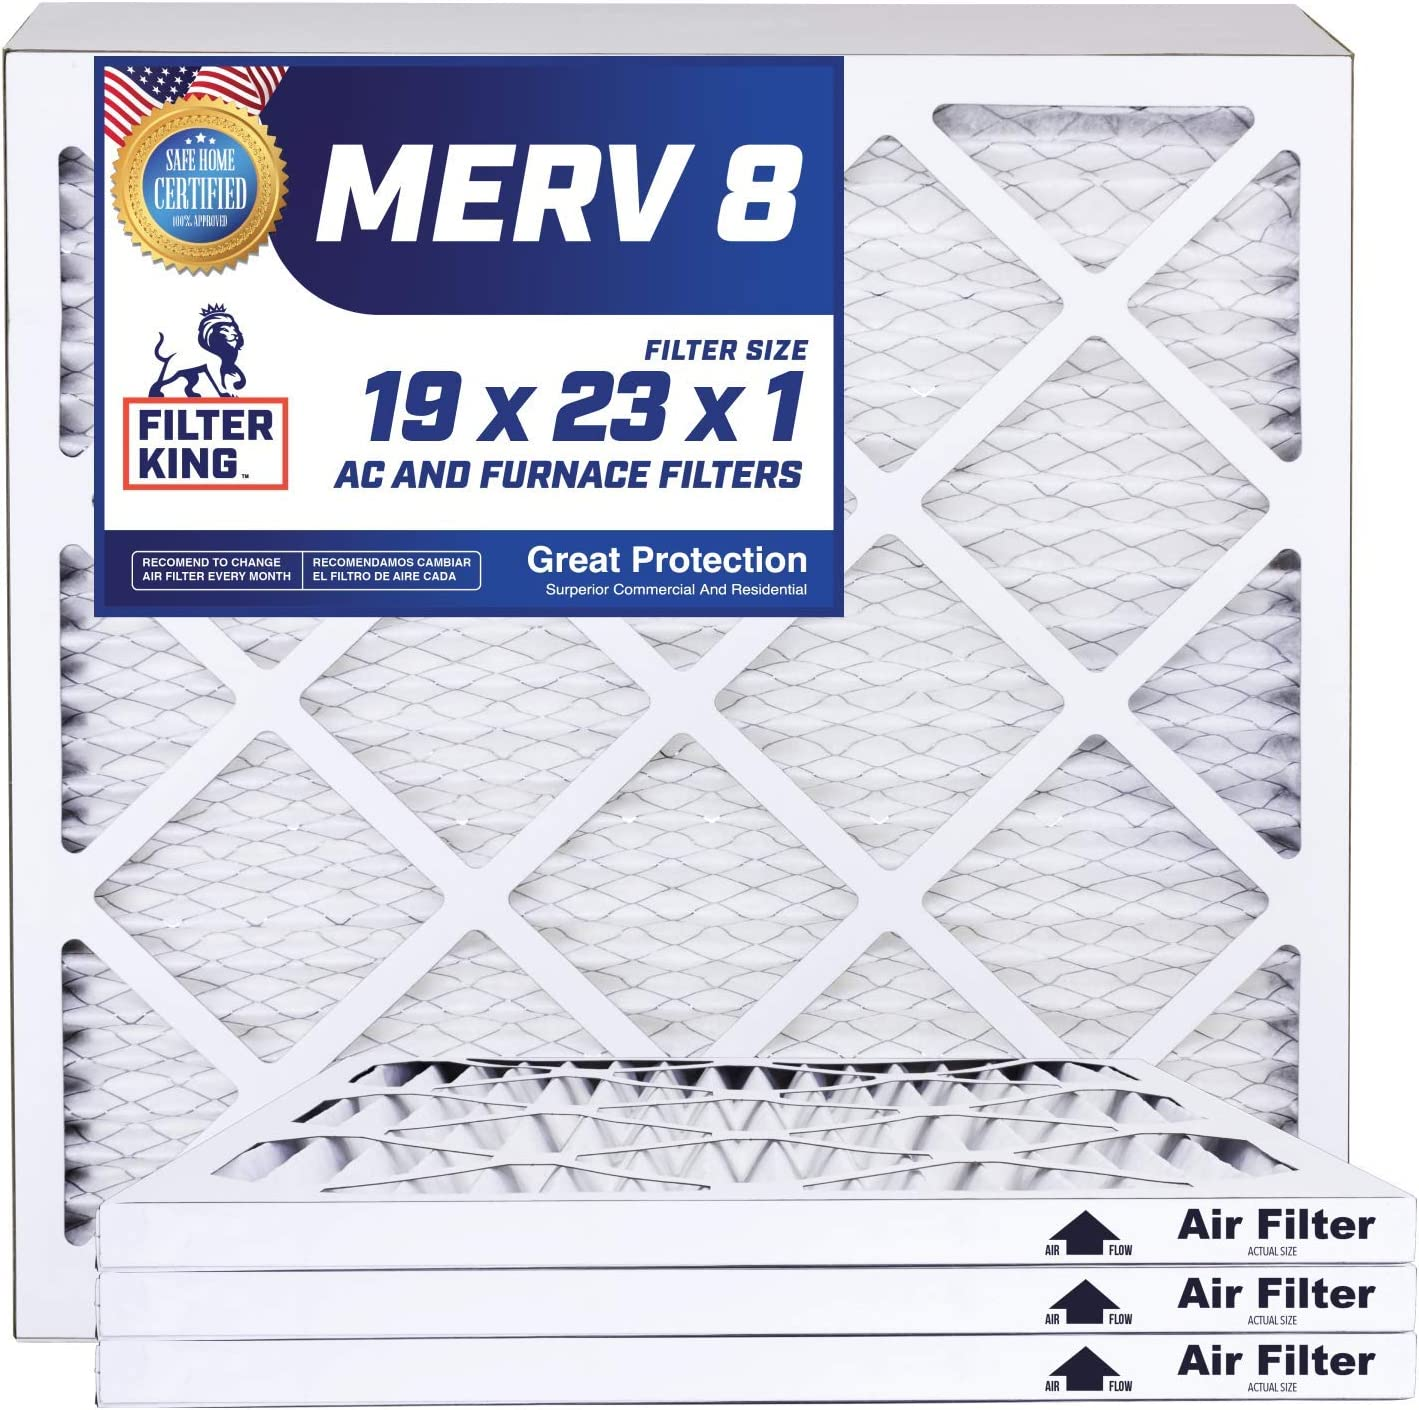 Filter King 19x23x1 Air Filters   4 Pack   MERV 8 HVAC Pleated AC Furnace Filters, Protection Against Mold and Pollen, Allergen Reduction, Increases Air Quality   Actual Size